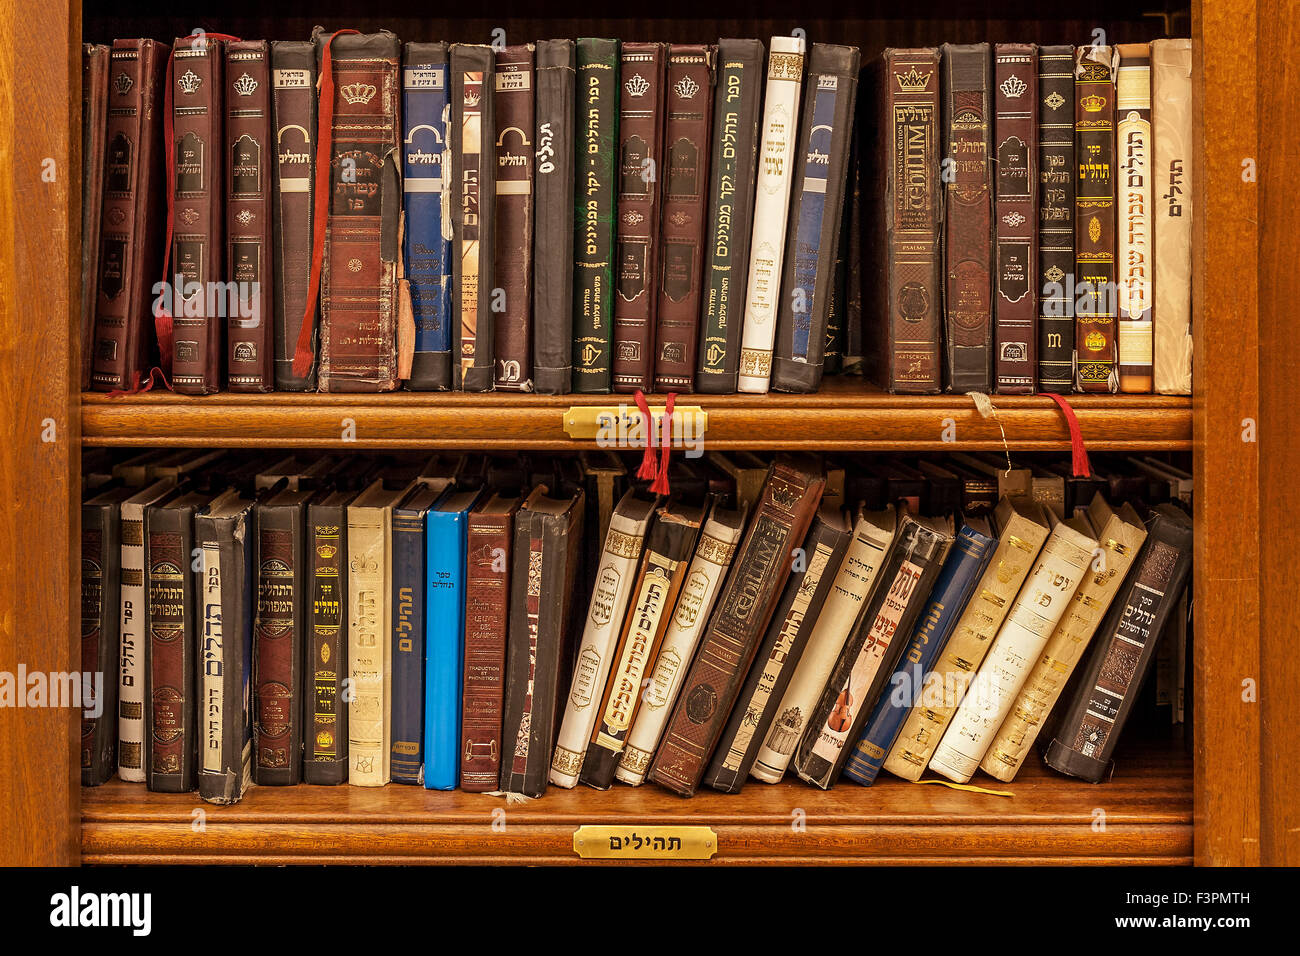 Jewish holy books inside Cave Synagogue (part of Western Wall) in Jerusalem, Israel. - Stock Image